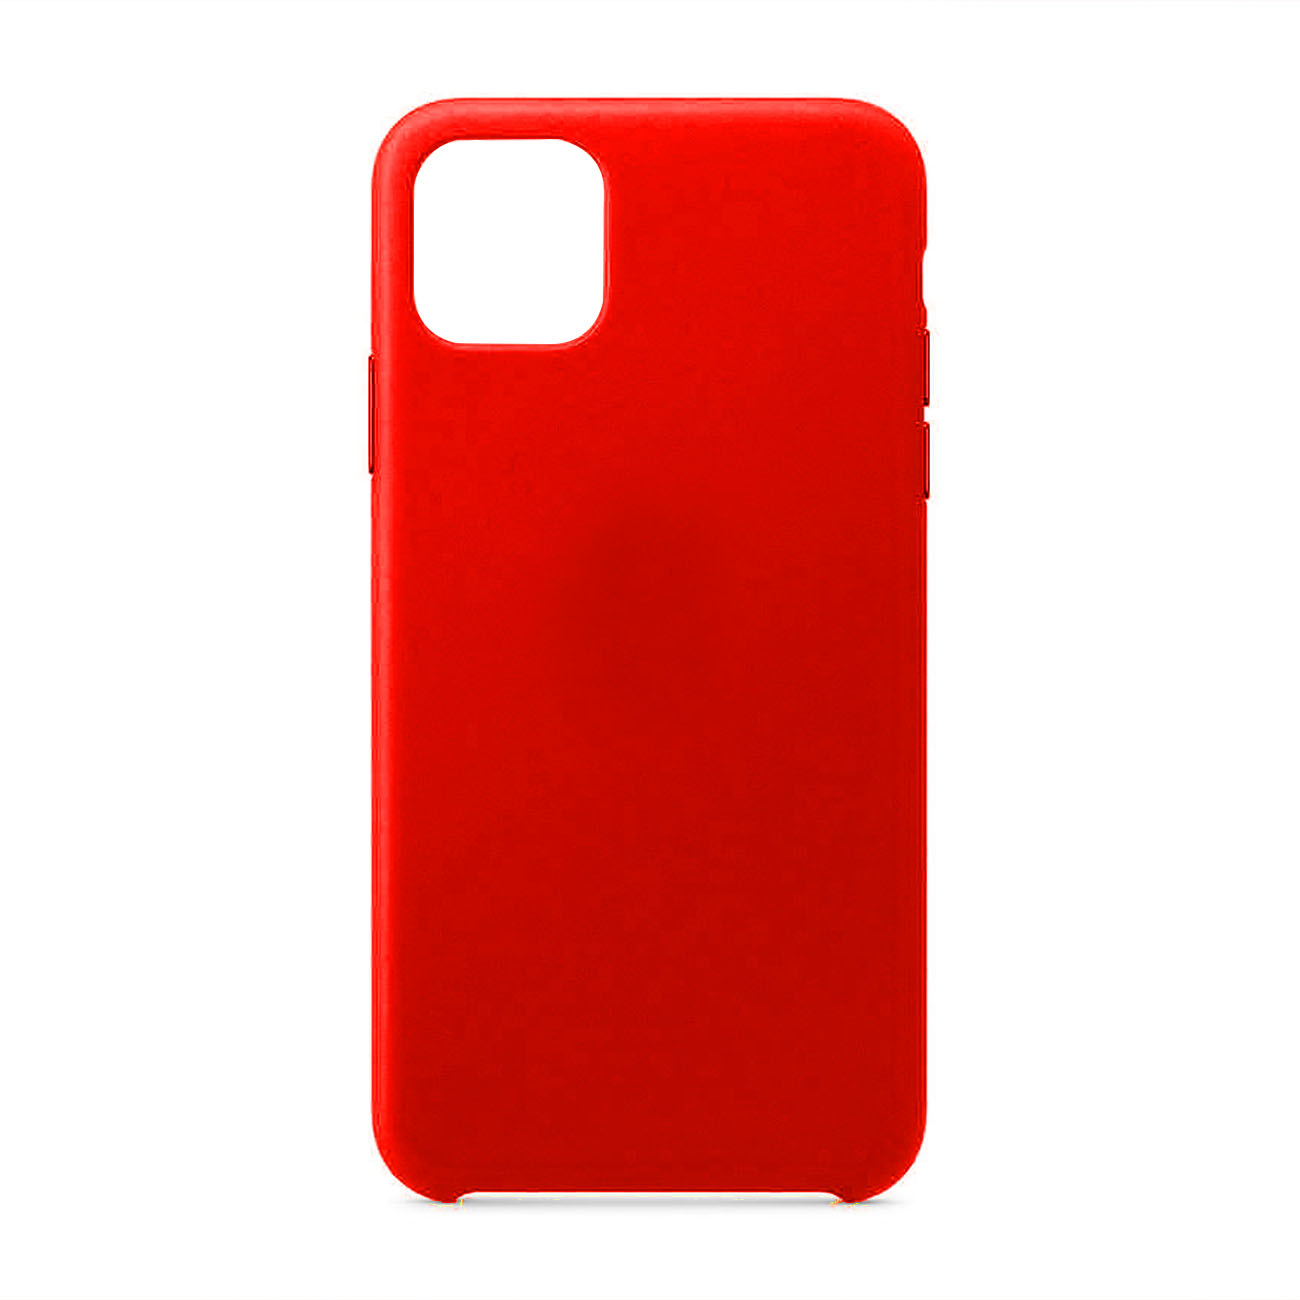 Apple iPhone 11 Pro Gummy Cases In Red